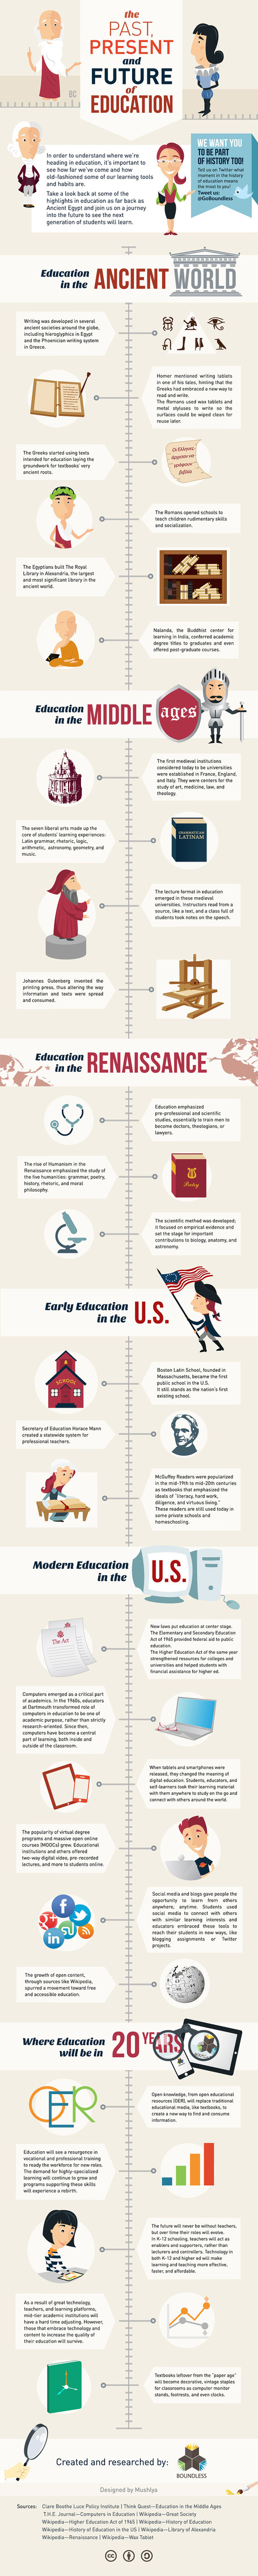 Infographic: The History of Education | Digitalmente | Scoop.it